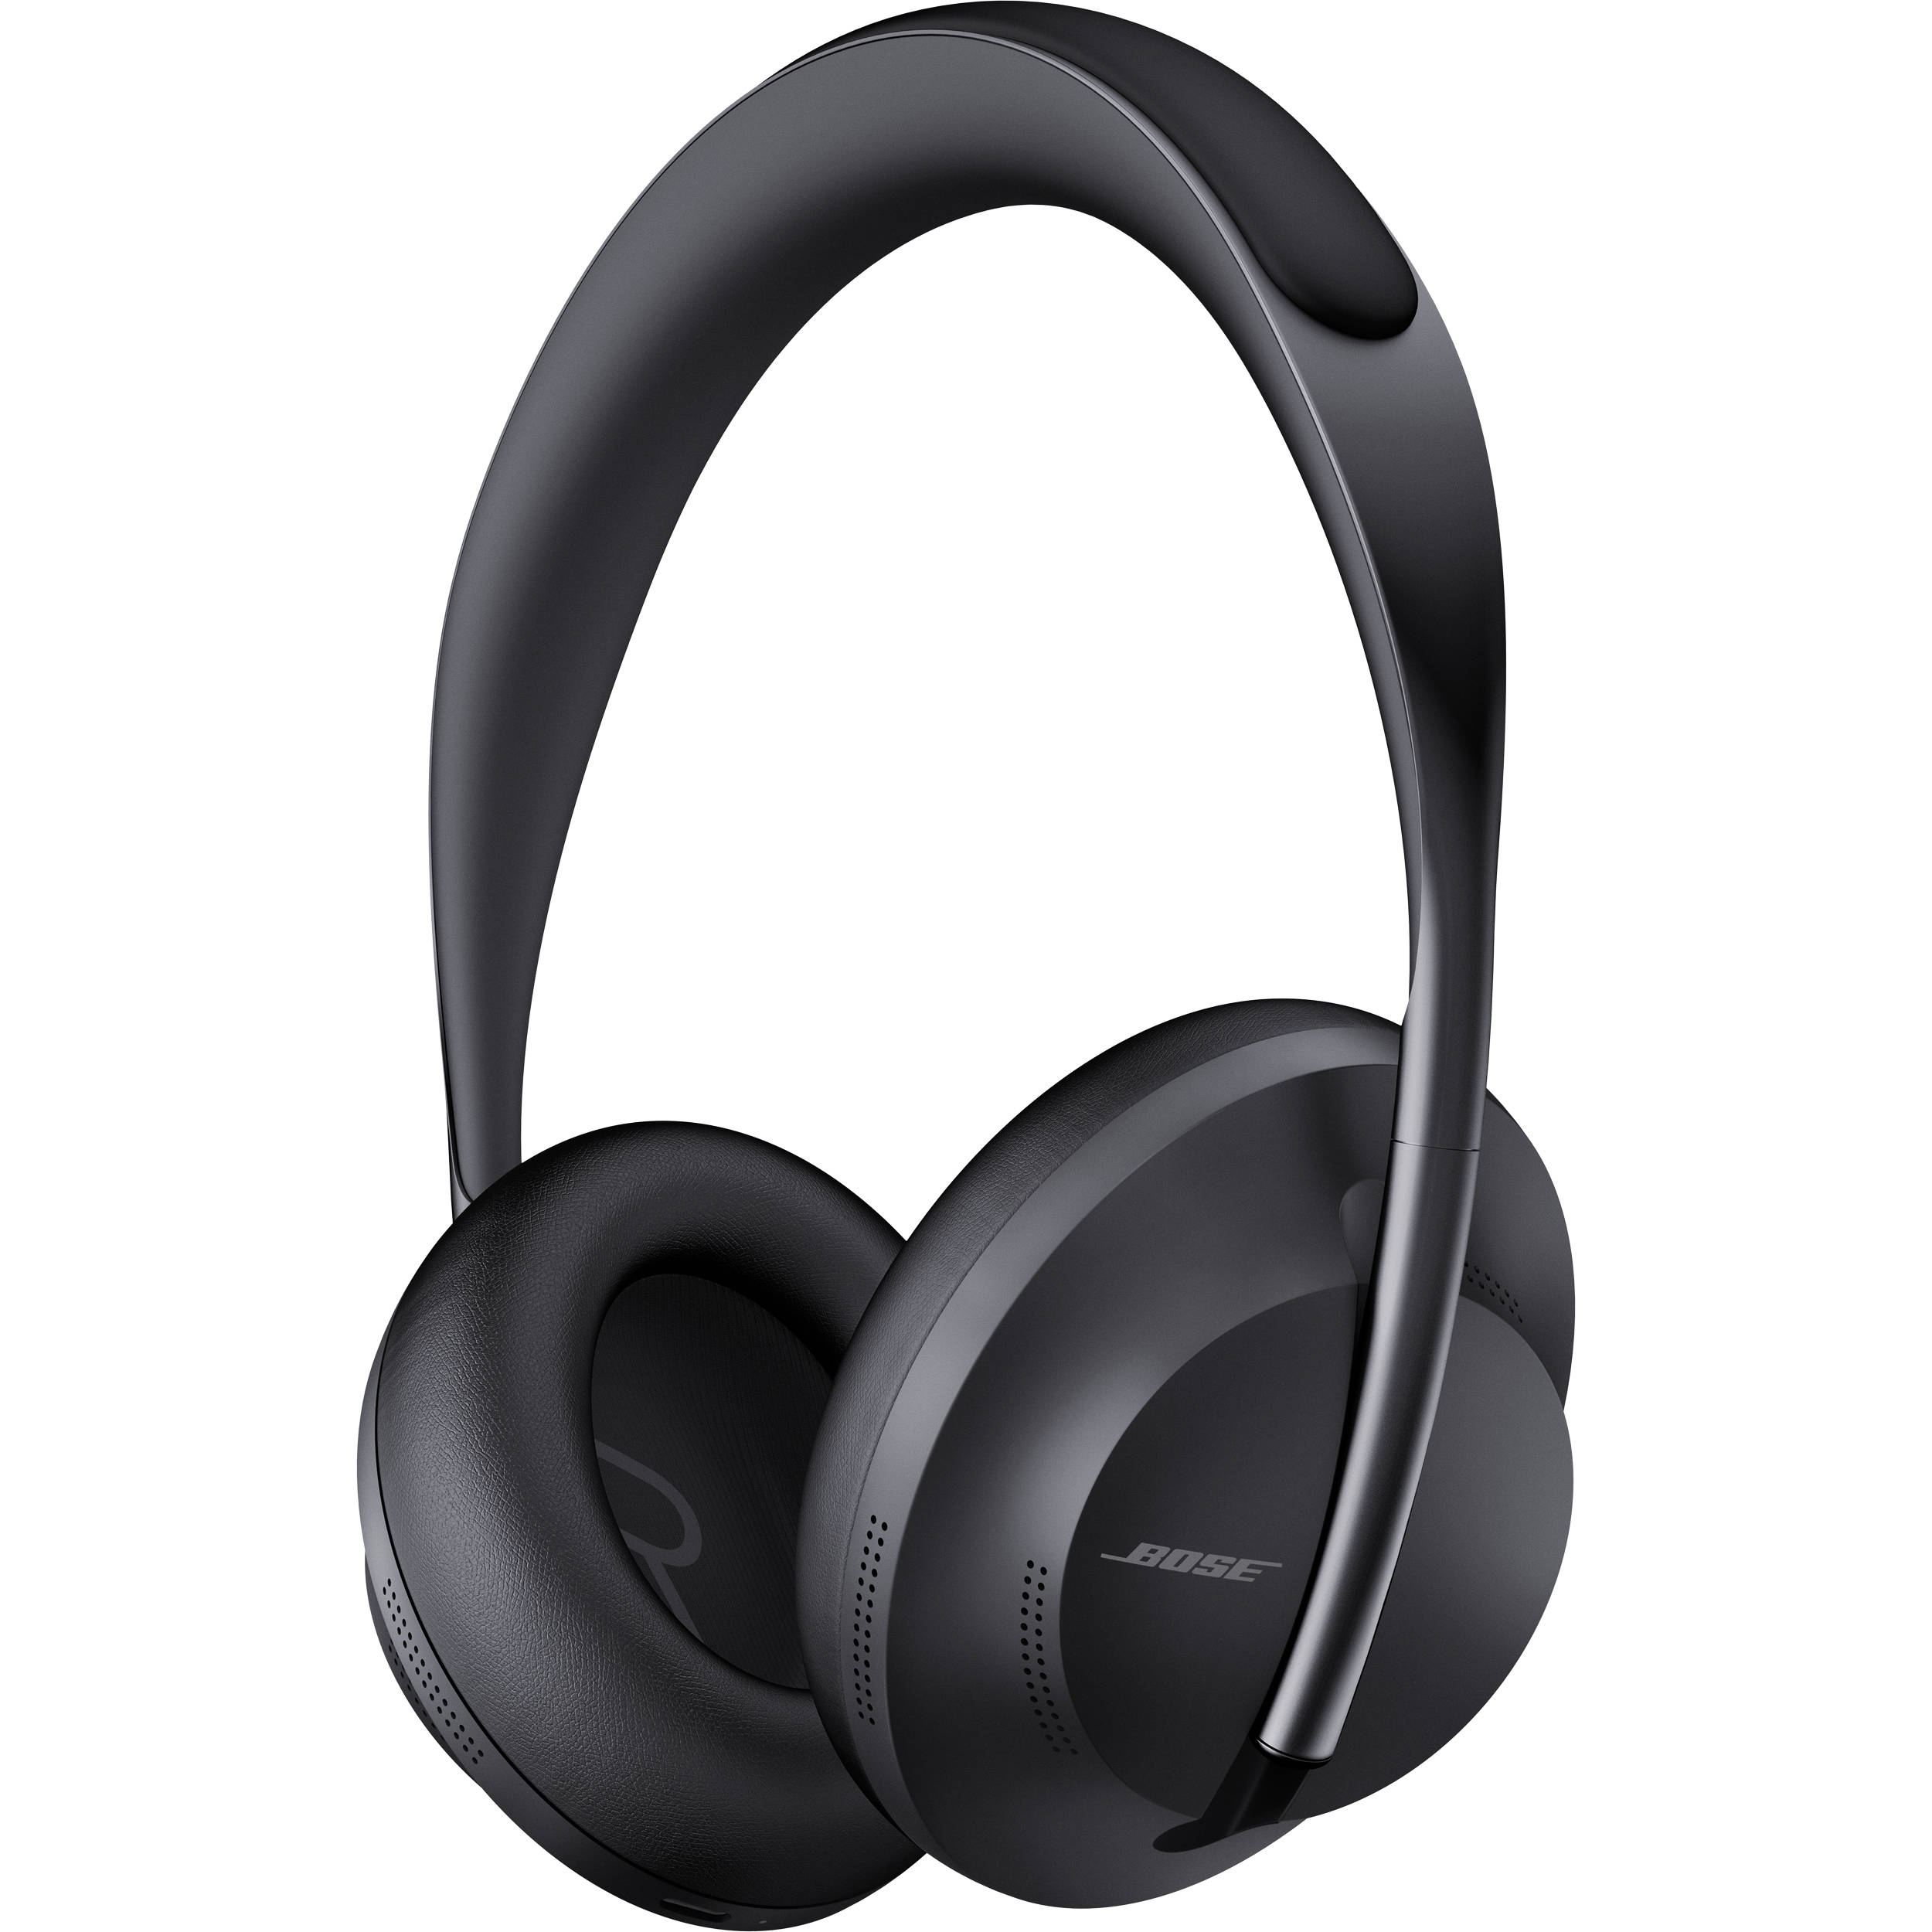 Image result for bose 700 headphones